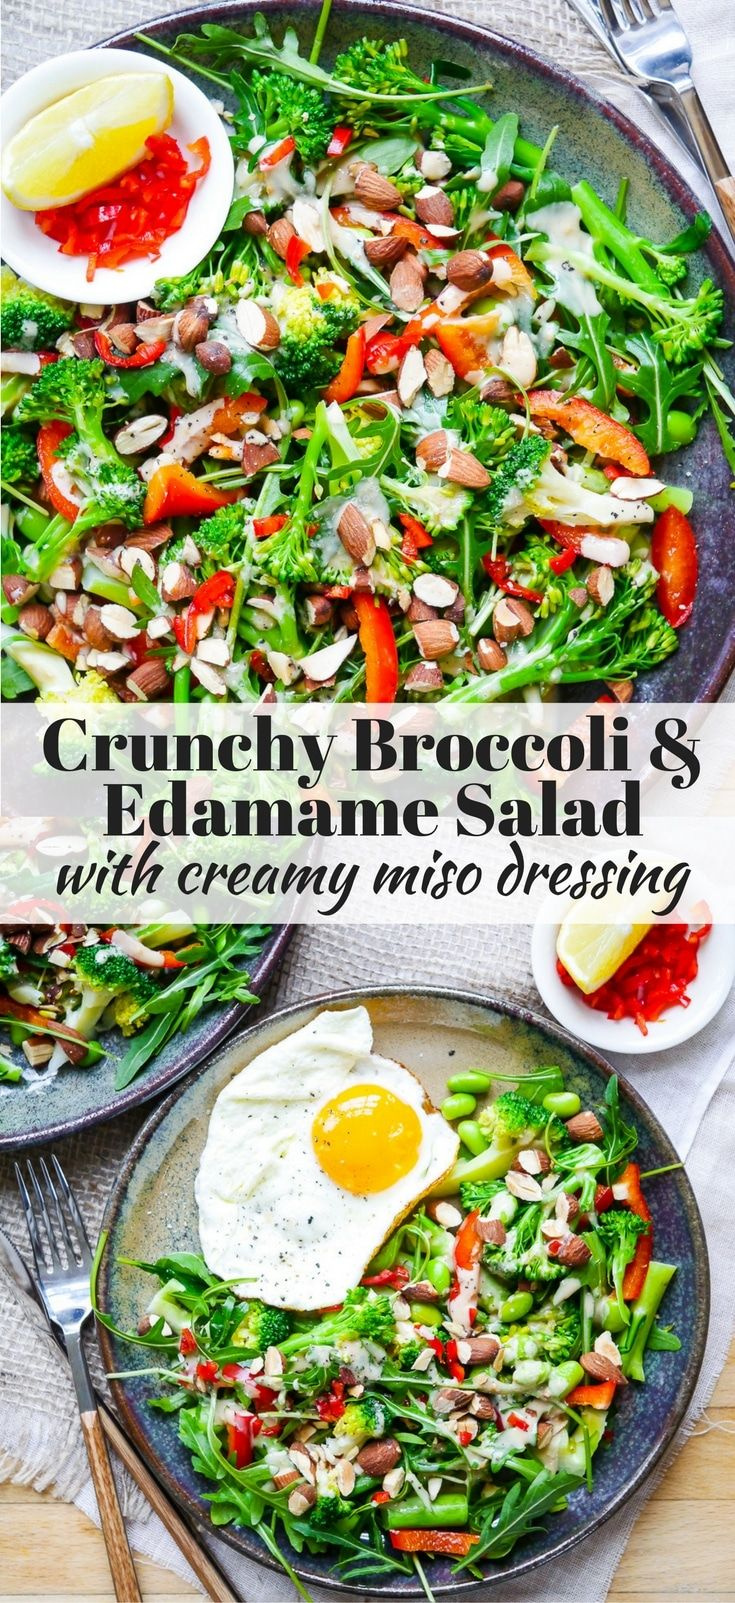 This crunchy broccoli edamame salad is finished with a delicious creamy miso dressing. Dairy free, gluten free and vegan friendly, and packed with filling plant protein! Via nourisheveryday.com